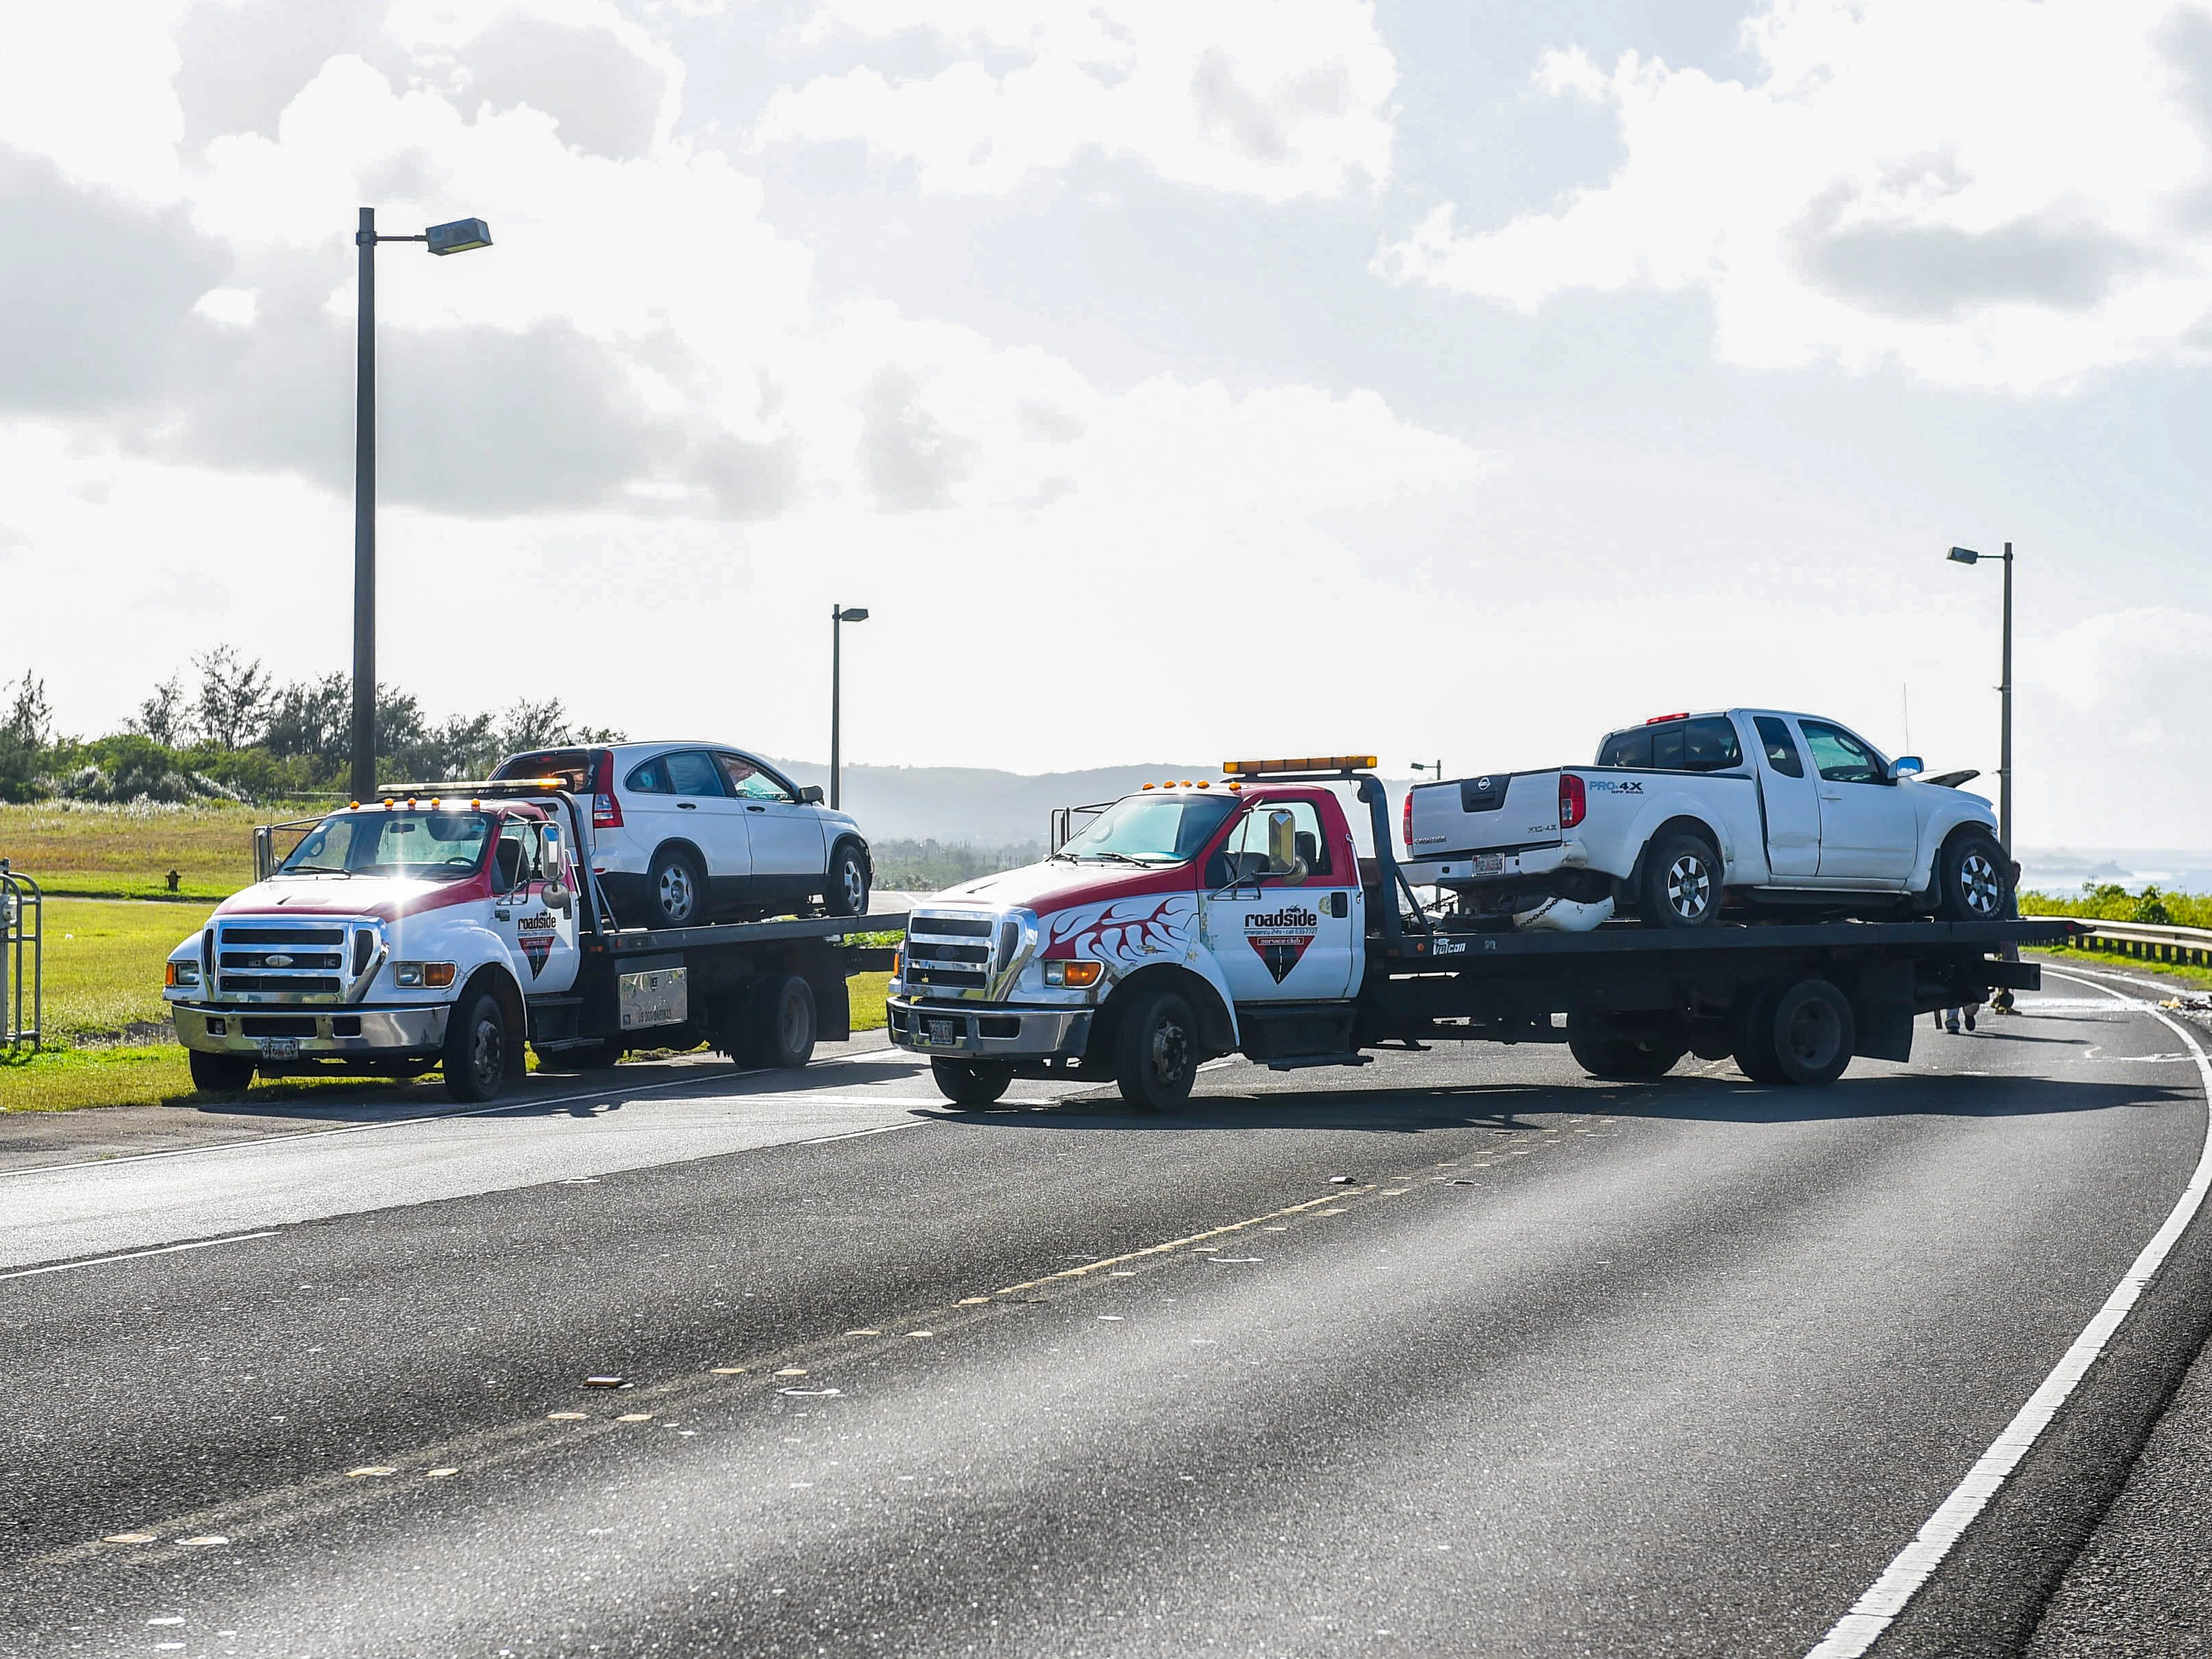 A Honda CR-V sports utility vehicle and a Nissan Frontier pickup can be seen loaded on vehicle transports as Guam Police Department officers conduct an investigation of a collision of the automobiles on Route 10A in Barrigada, Jan. 6, 2019.